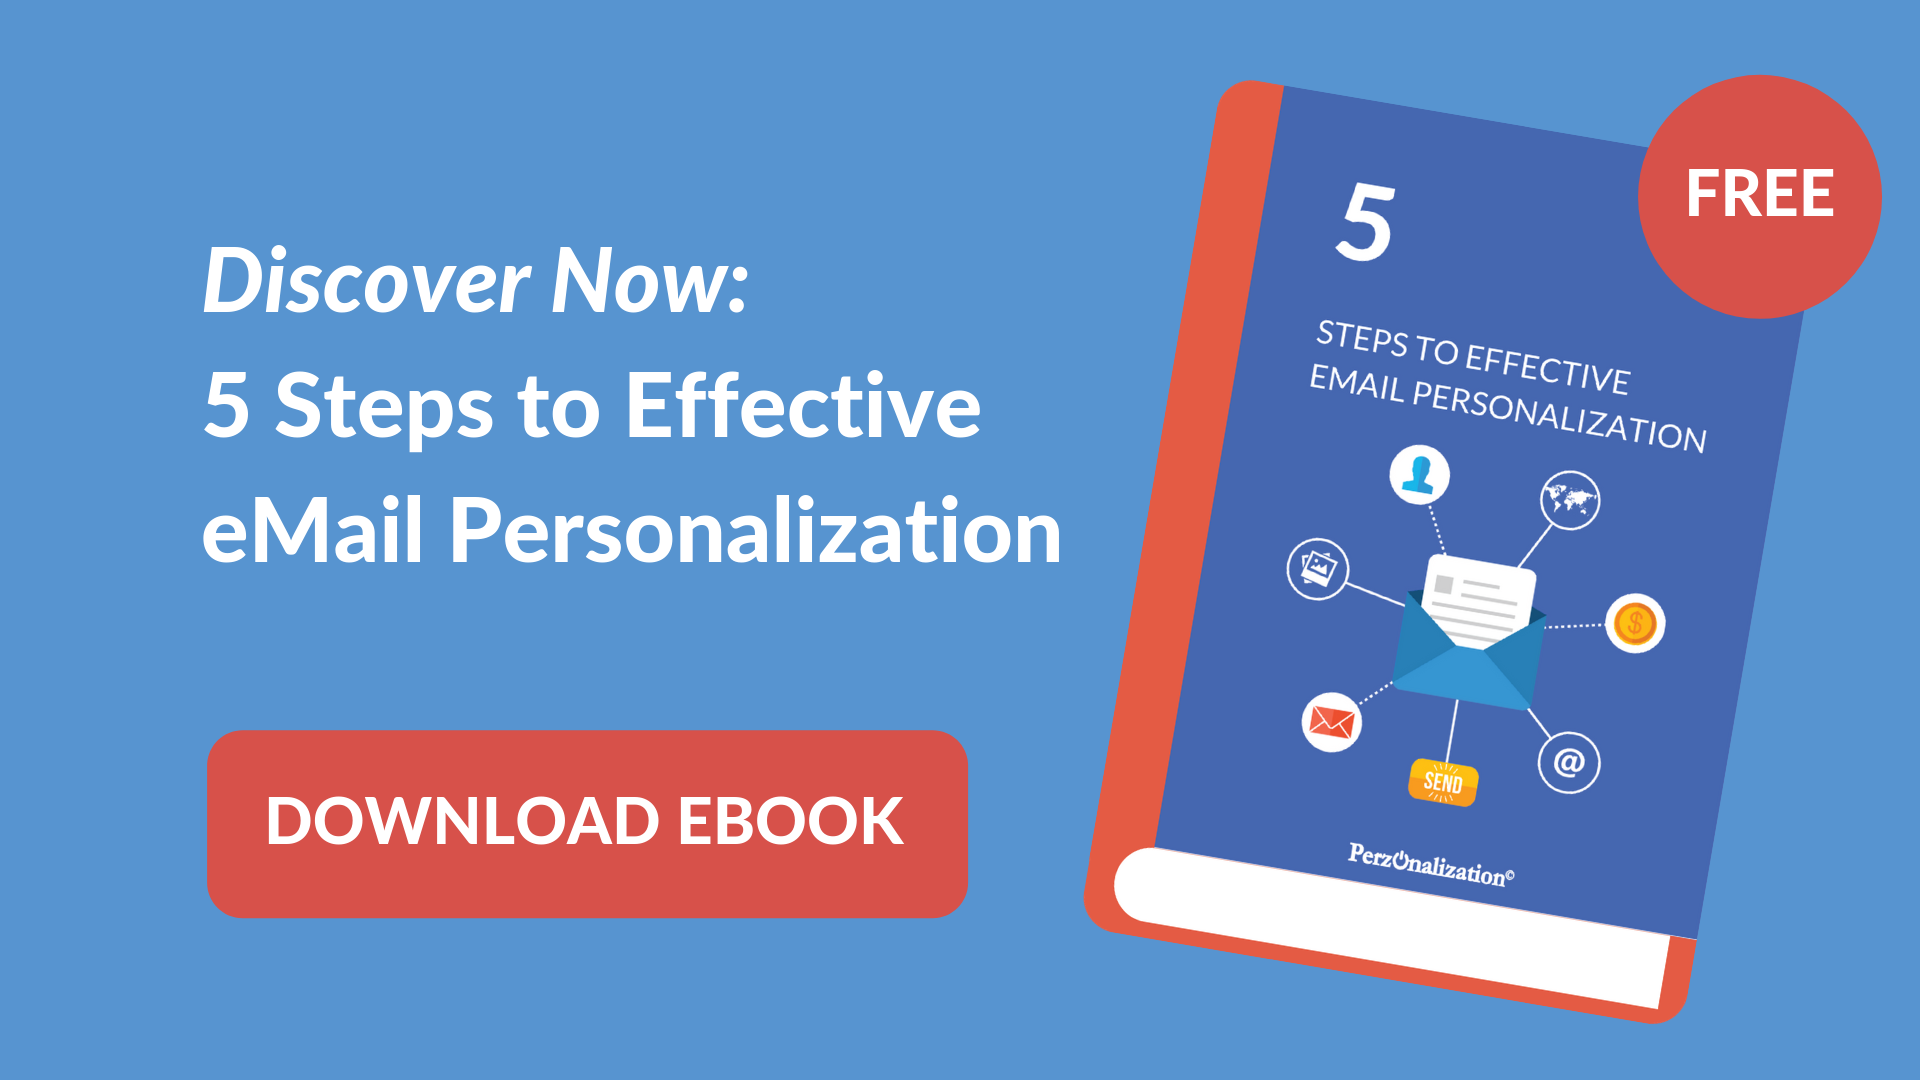 Download free eBook: 5 Steps to Email Personalization